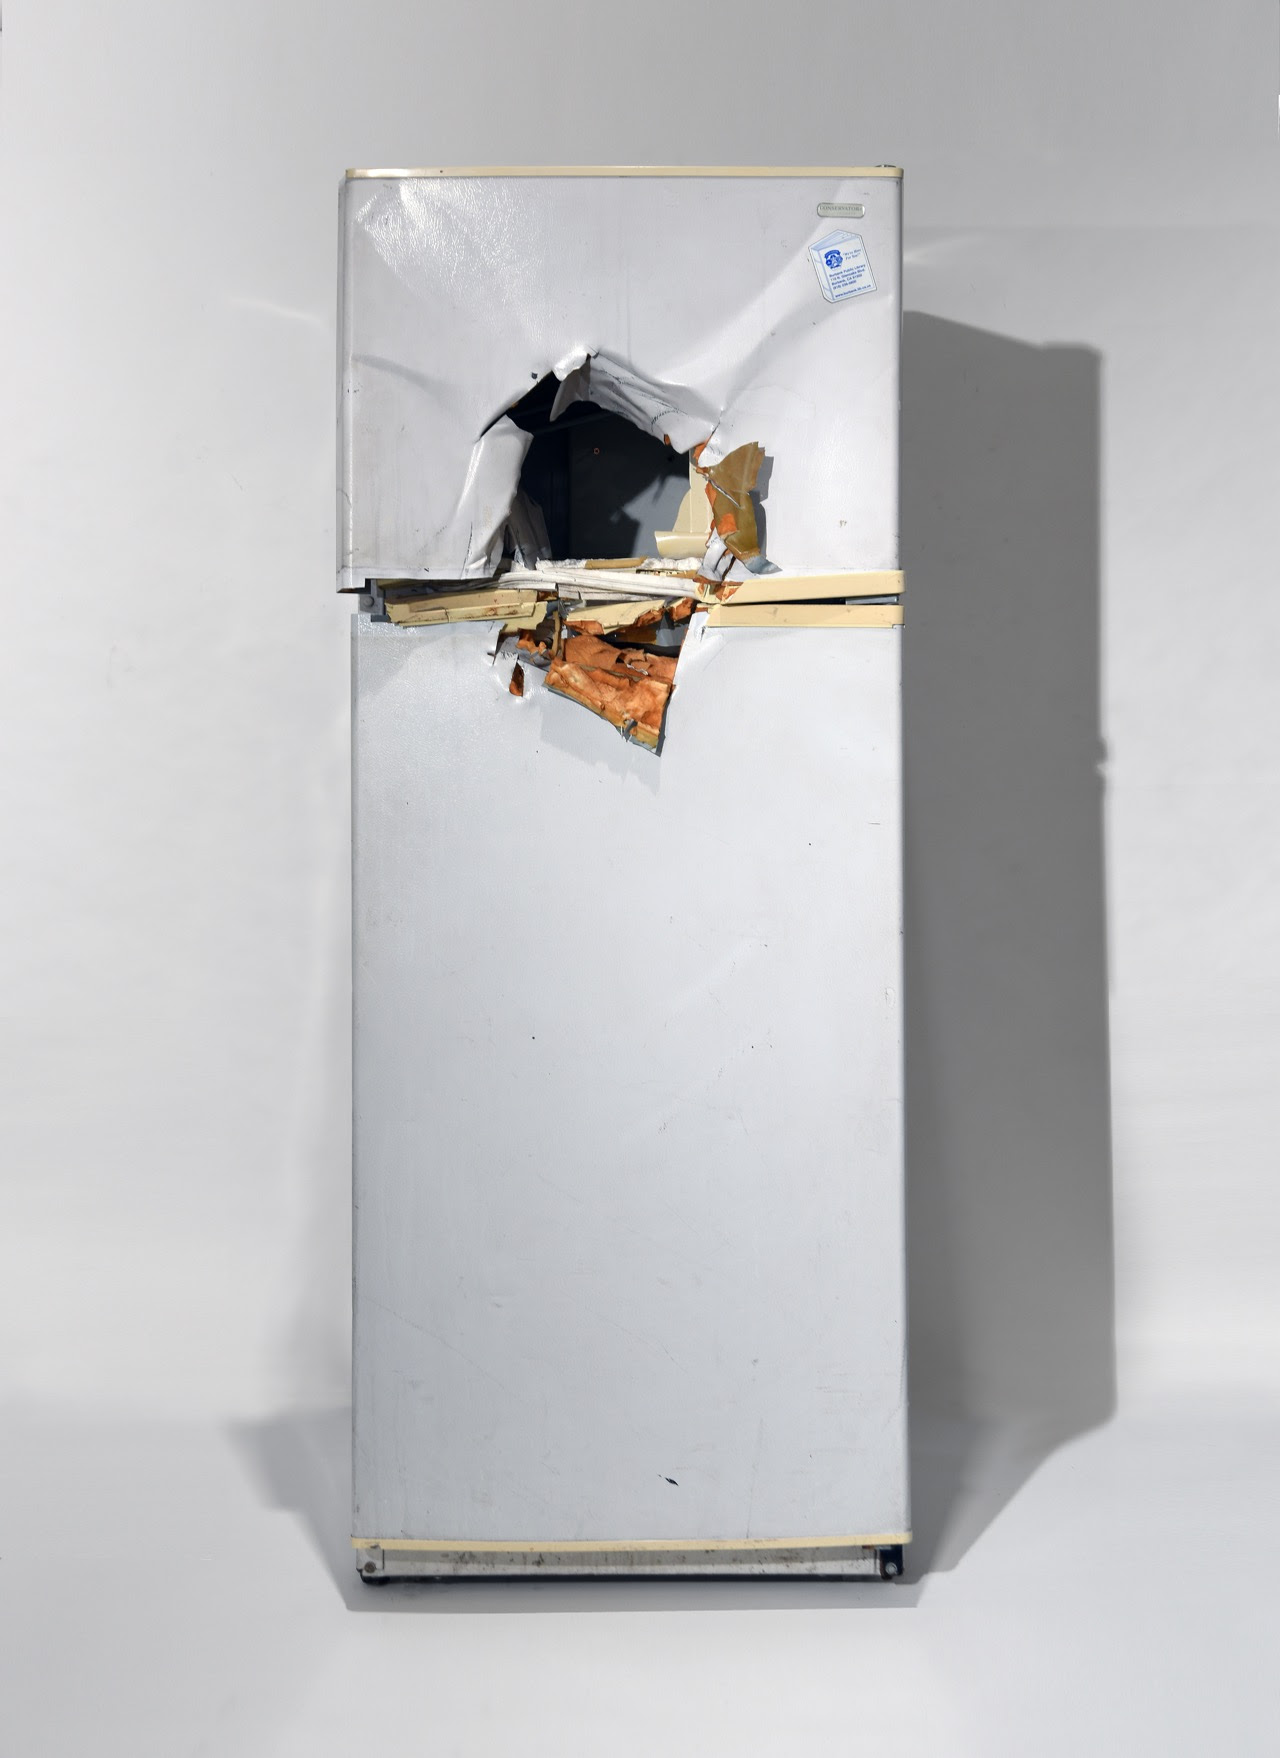 """Rodney McMillian """"Untitled (refrigerator)"""" 2009. Photo courtesy the Orange County Museum of Art and Bliss Photography"""